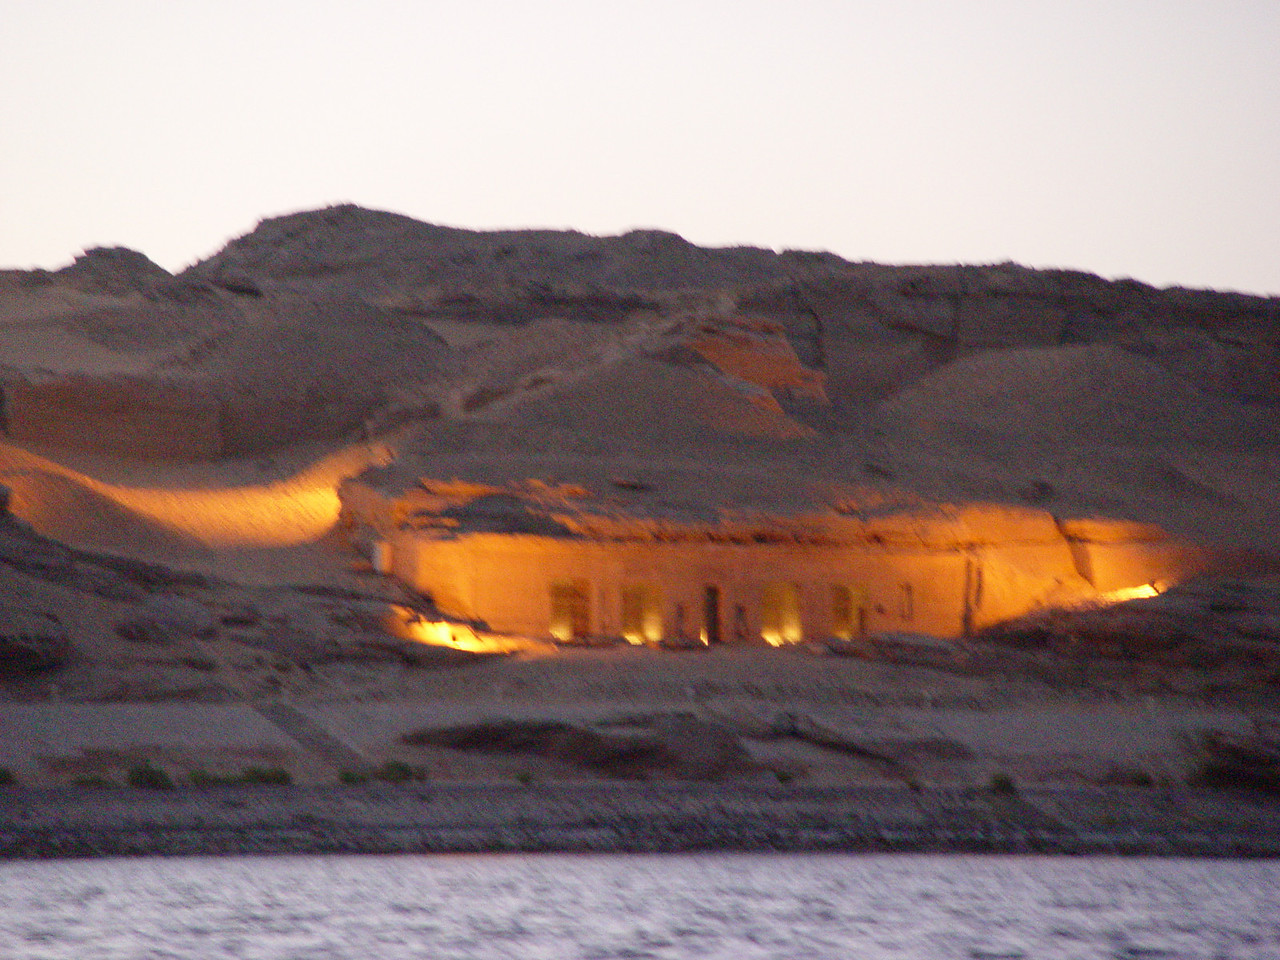 m) The tombs of Gebel el Silsila (Chain of Hills). I read about these in KMT journal (fall 2004 edition). Note: KMT is the transliteration for Kemet in ancient egypt. They didn't write vowels and Kemet is the true name of Egypt in ancient times, it means- the black lands, referring to the dark nile dirt. <br />  The major tomb of Gebel el Silsila is the speos Horemheb in this photo. Built and decorated by the last pharoah of the 18th dynasty (Horemheb), it was further enhanced by the Ramessides of the 19th dynasty. This is on the west side of the nile. On the east side are the quarries where  most of the limestone for the temples are cut.